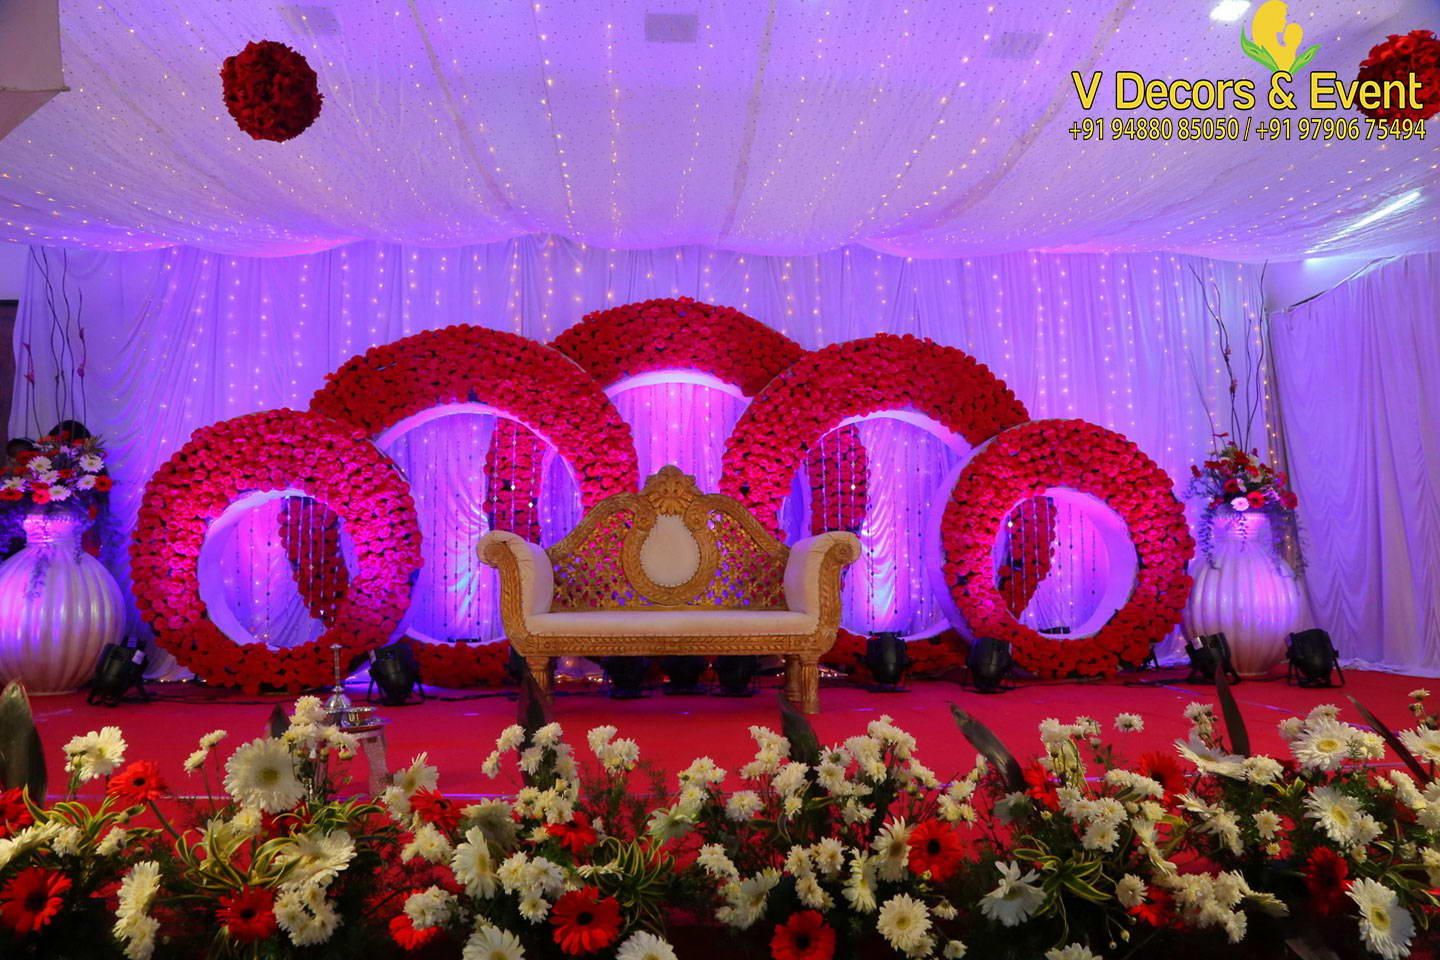 decor services pukena decorations concierge decoration event